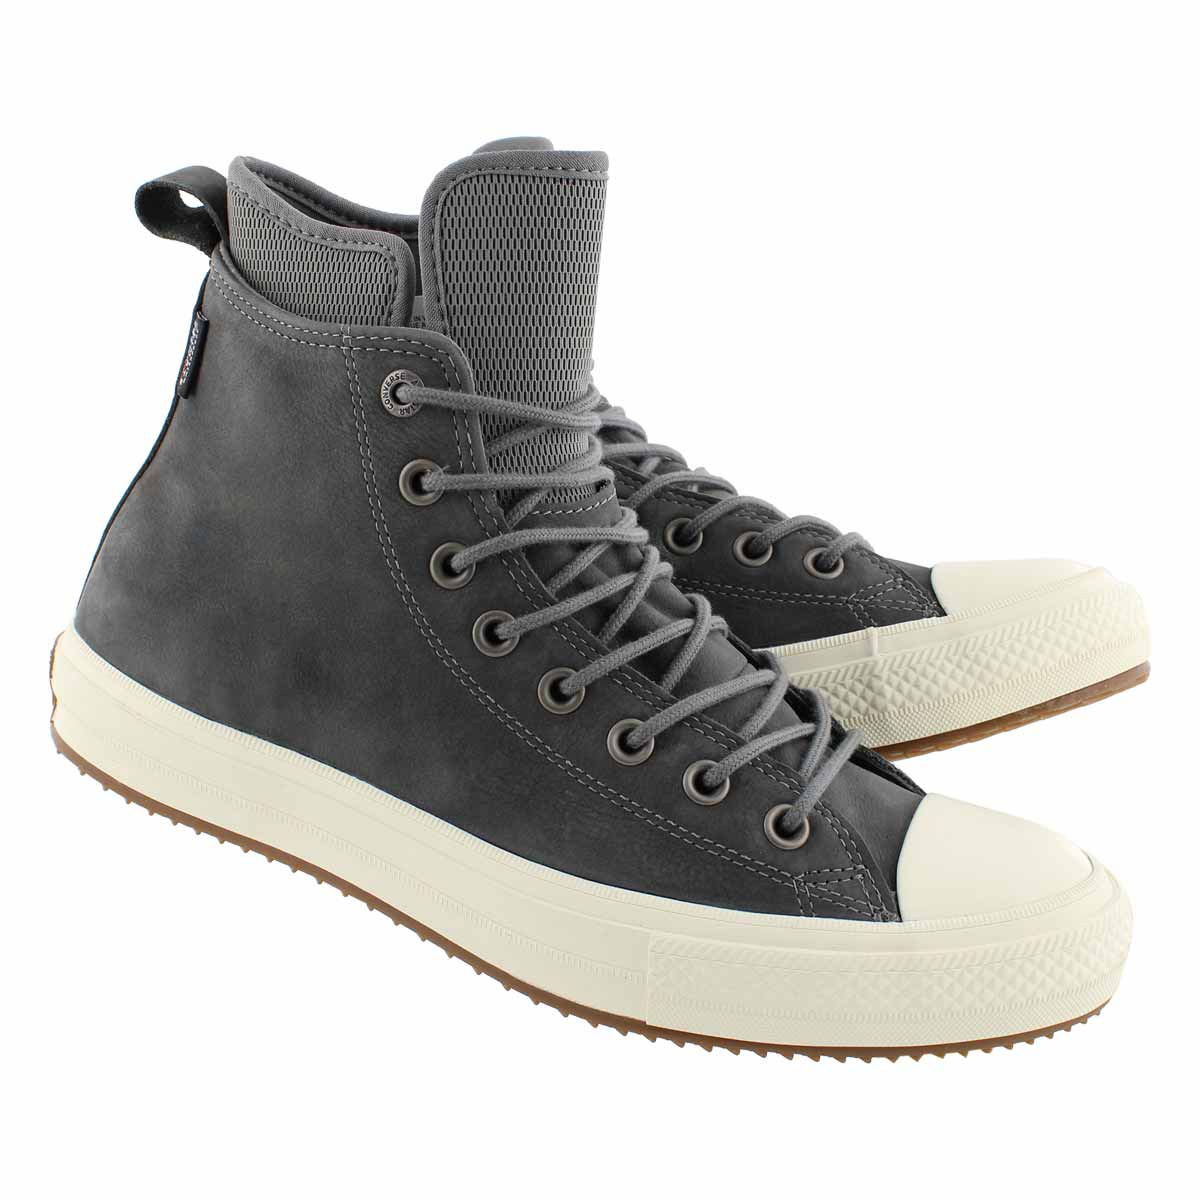 Mns CT Waterproof Hi mason/egret boot